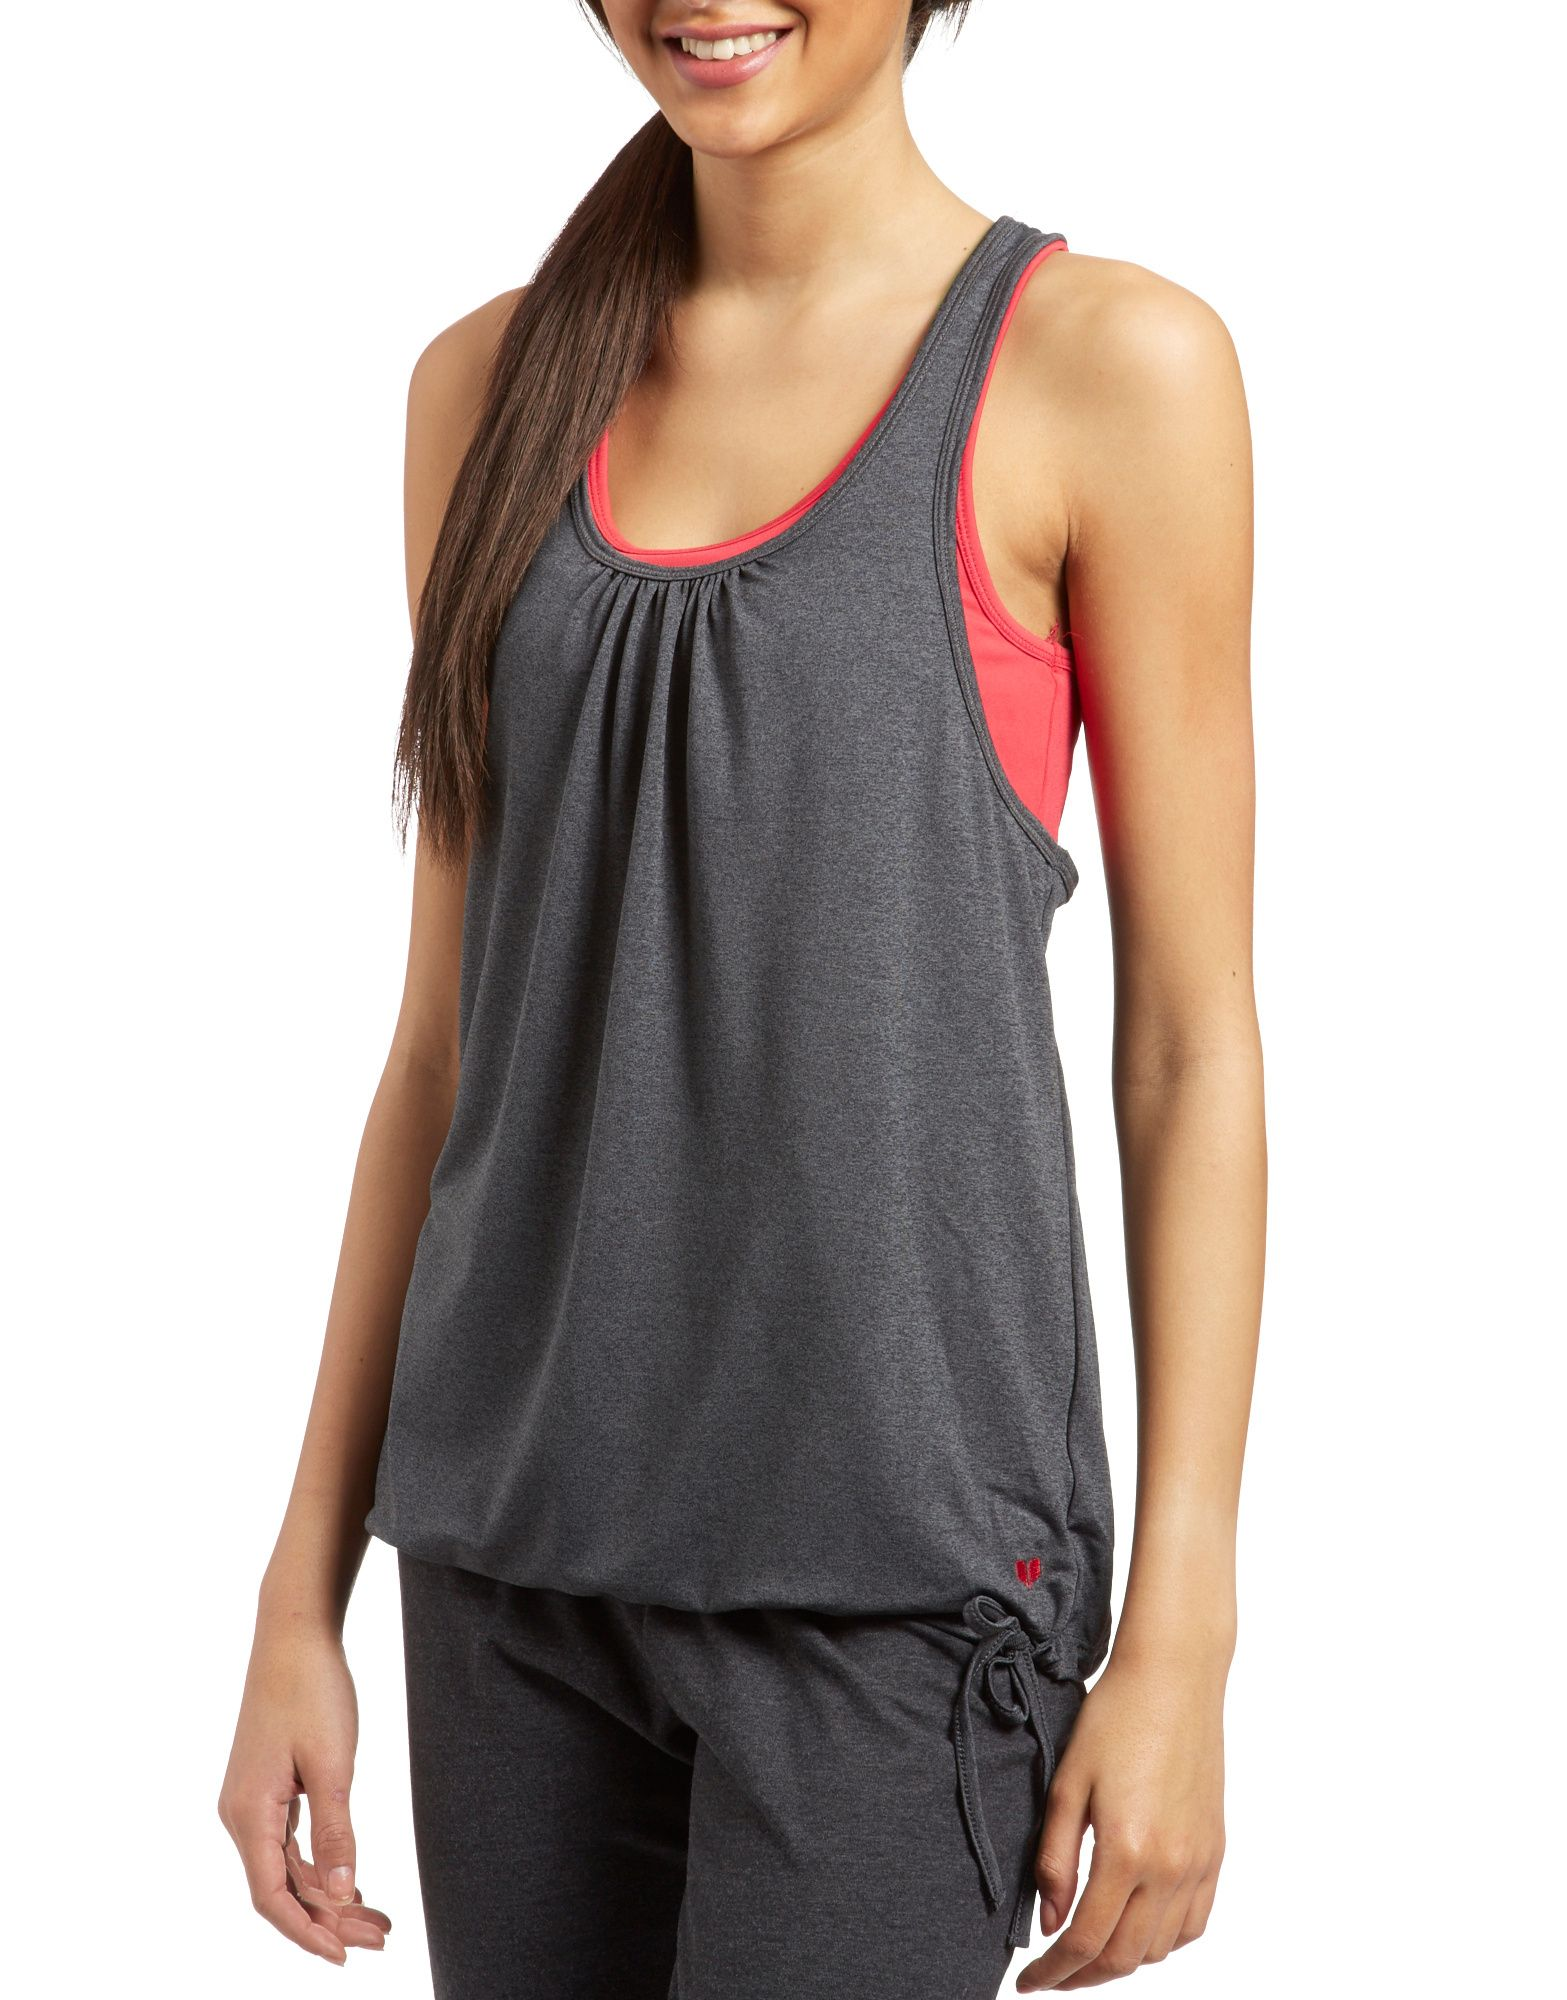 Pure Simple Sport Tone 2 Layer Tank Top